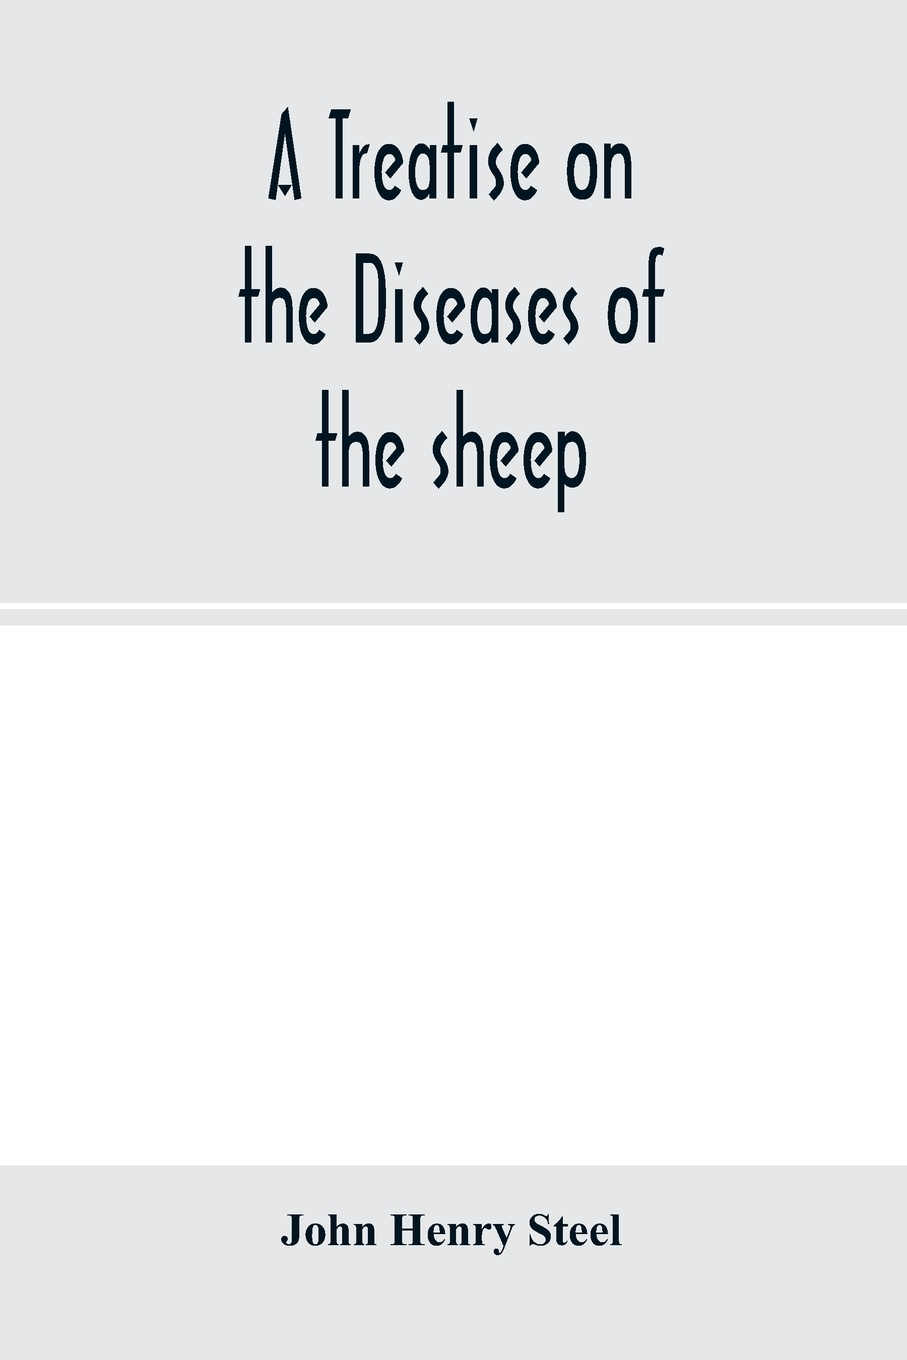 John Henry Steel. A treatise on the diseases of the sheep; being a manual of ovine pathology. Especially adapted for the use of veterinary practitioners and students